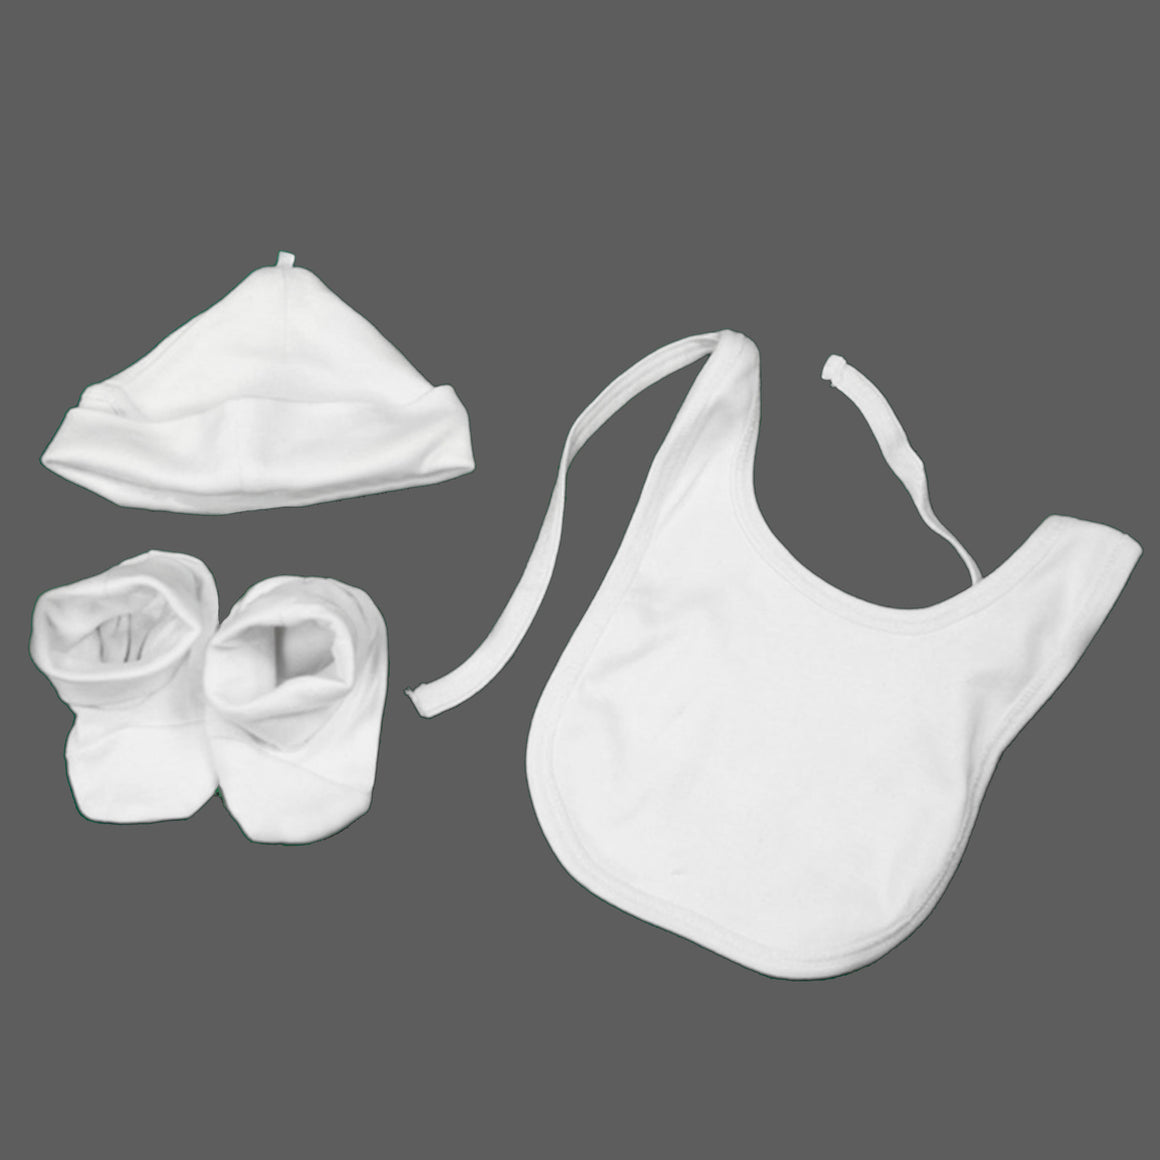 NEWBORN BABY: CAP, BIB and BOOTIES - MyOrganicSleep